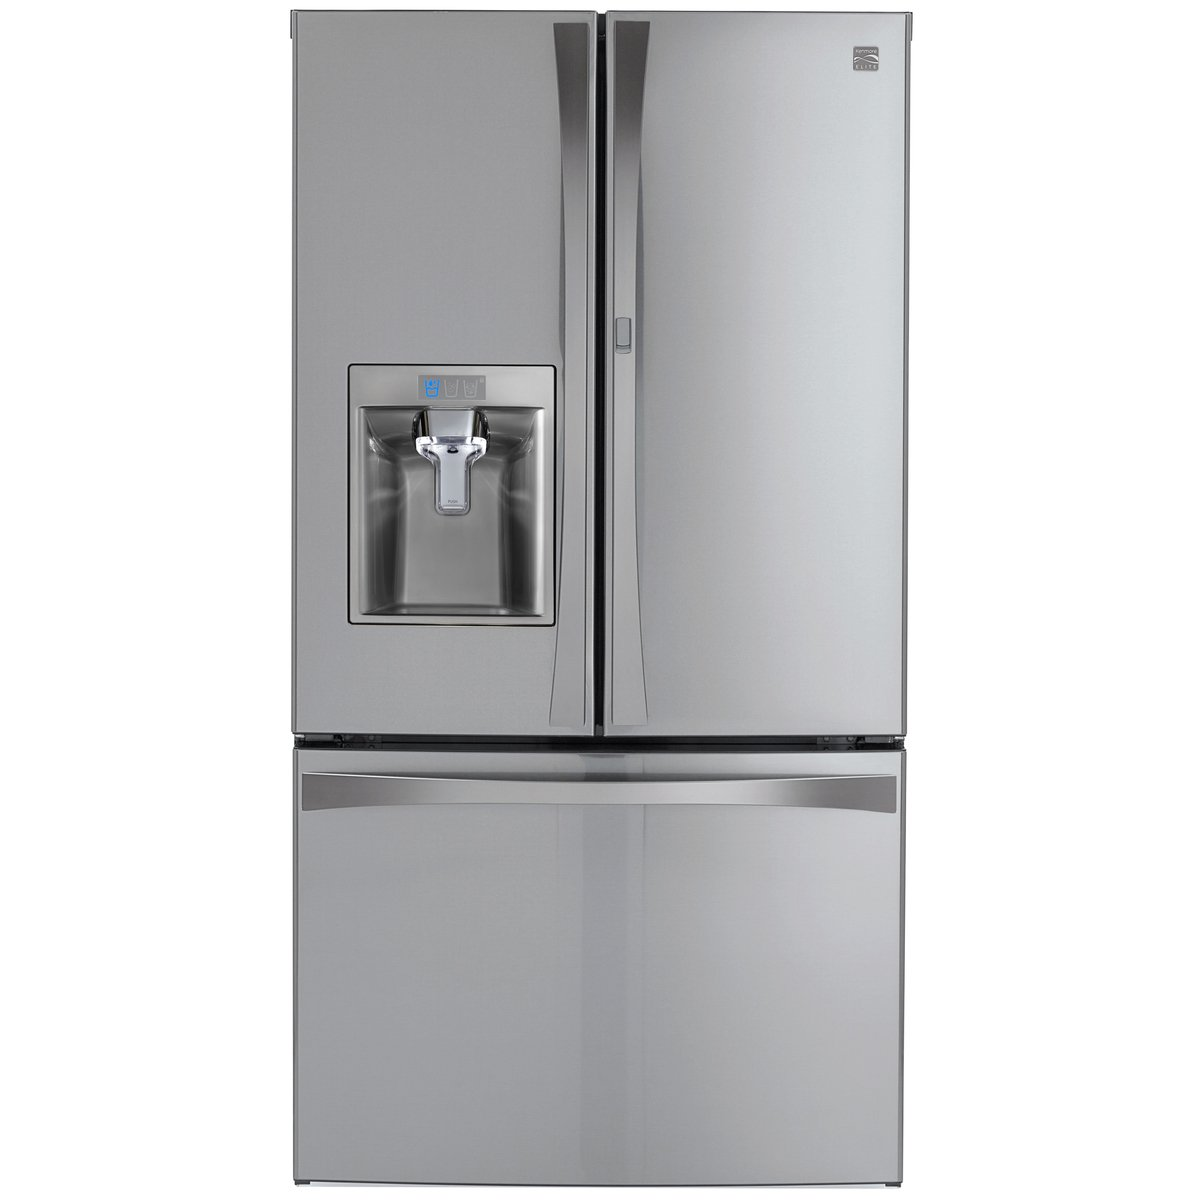 Kenmore Elite 73165 28.5 cu. ft. Bottom Freezer Refrigerator with Grab-N-Go Door in Stainless Steel with Active Finish, includes delivery and hookup